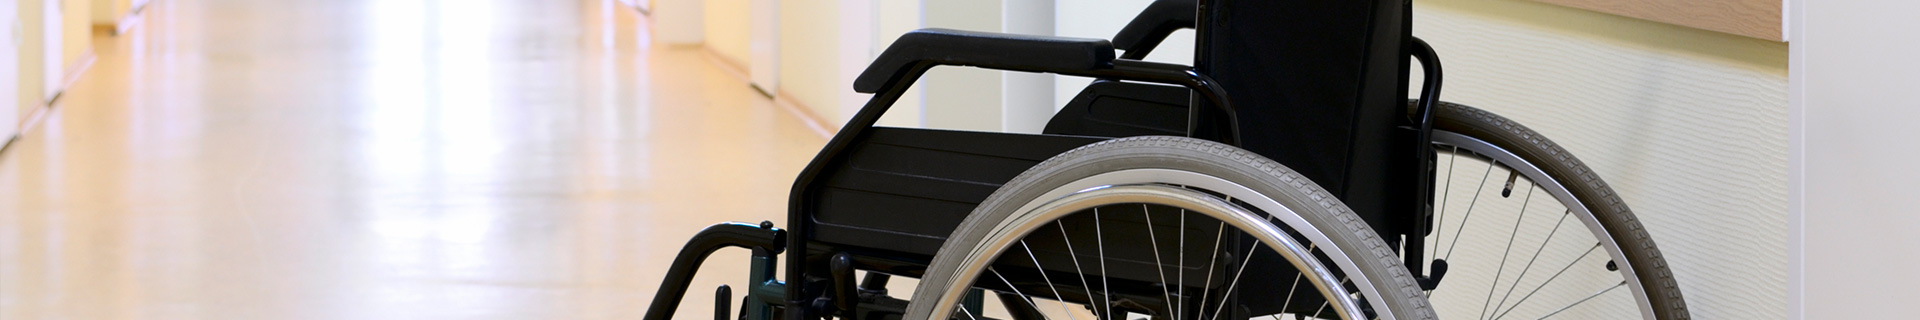 wheel chair in a nursing home